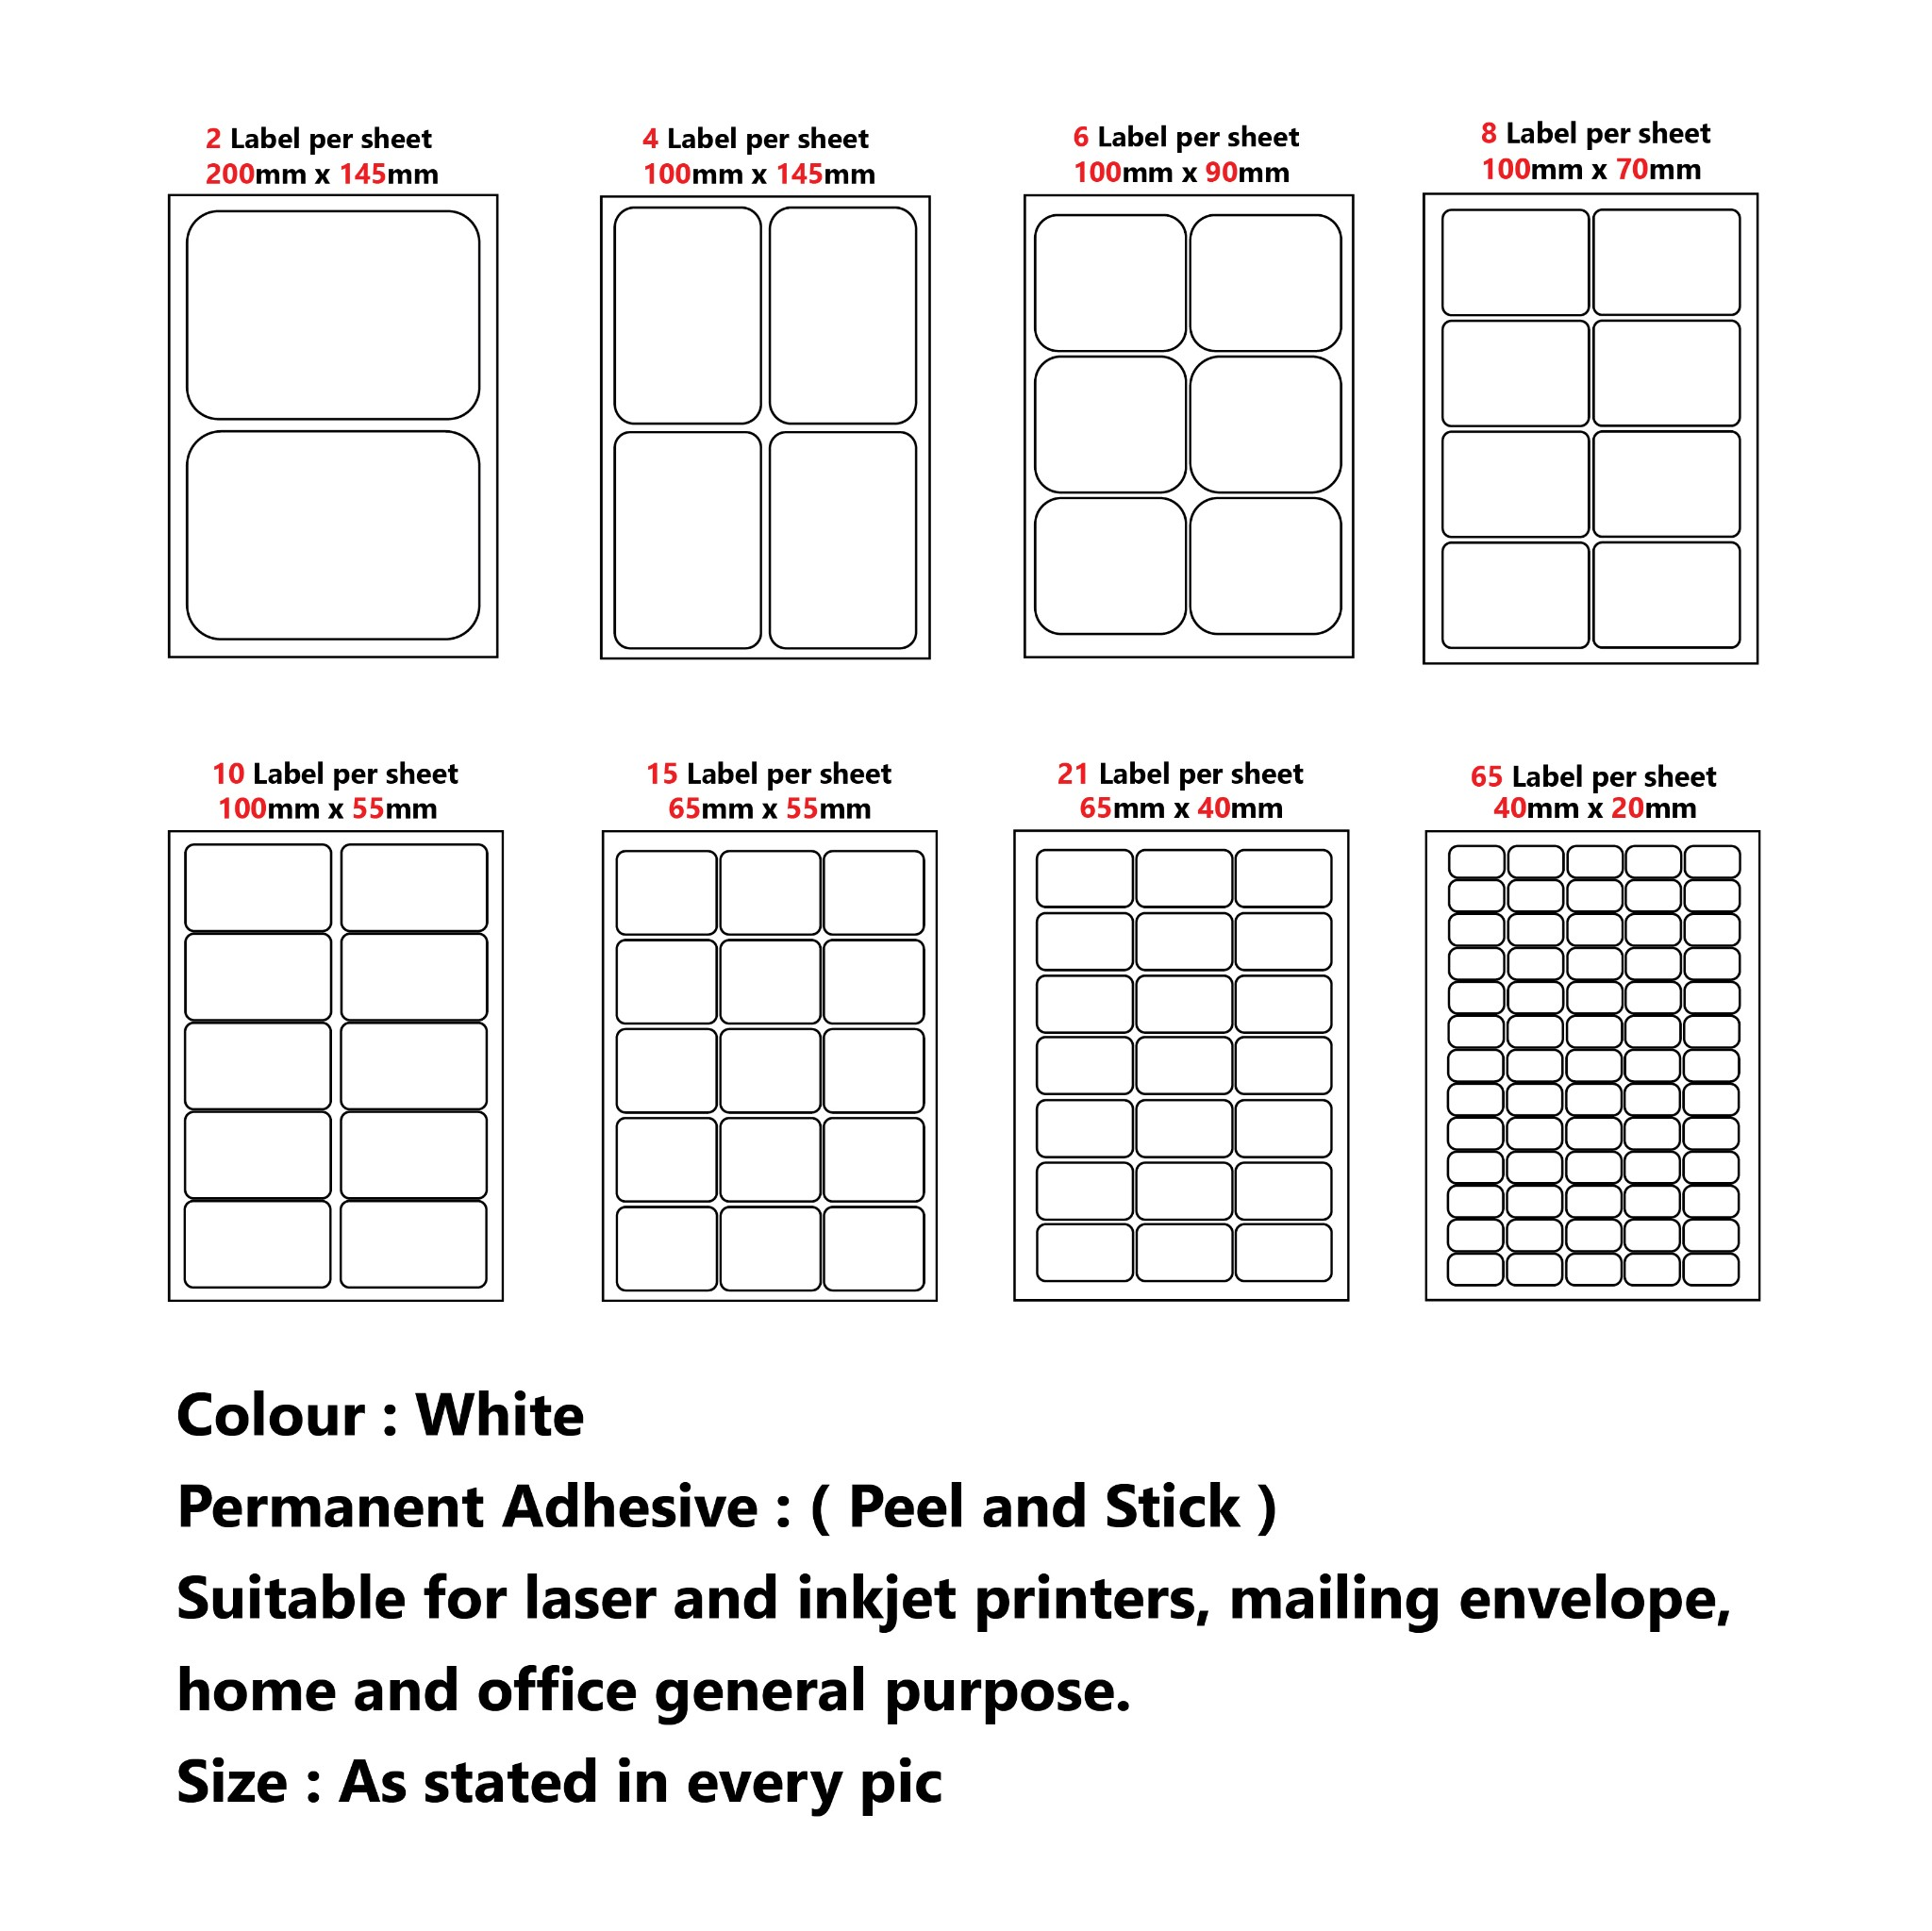 Business, Office & Industrial 40 Labels Per Sheet A4 Address Labels Sticky Self Adhesive White Peel Material Handling